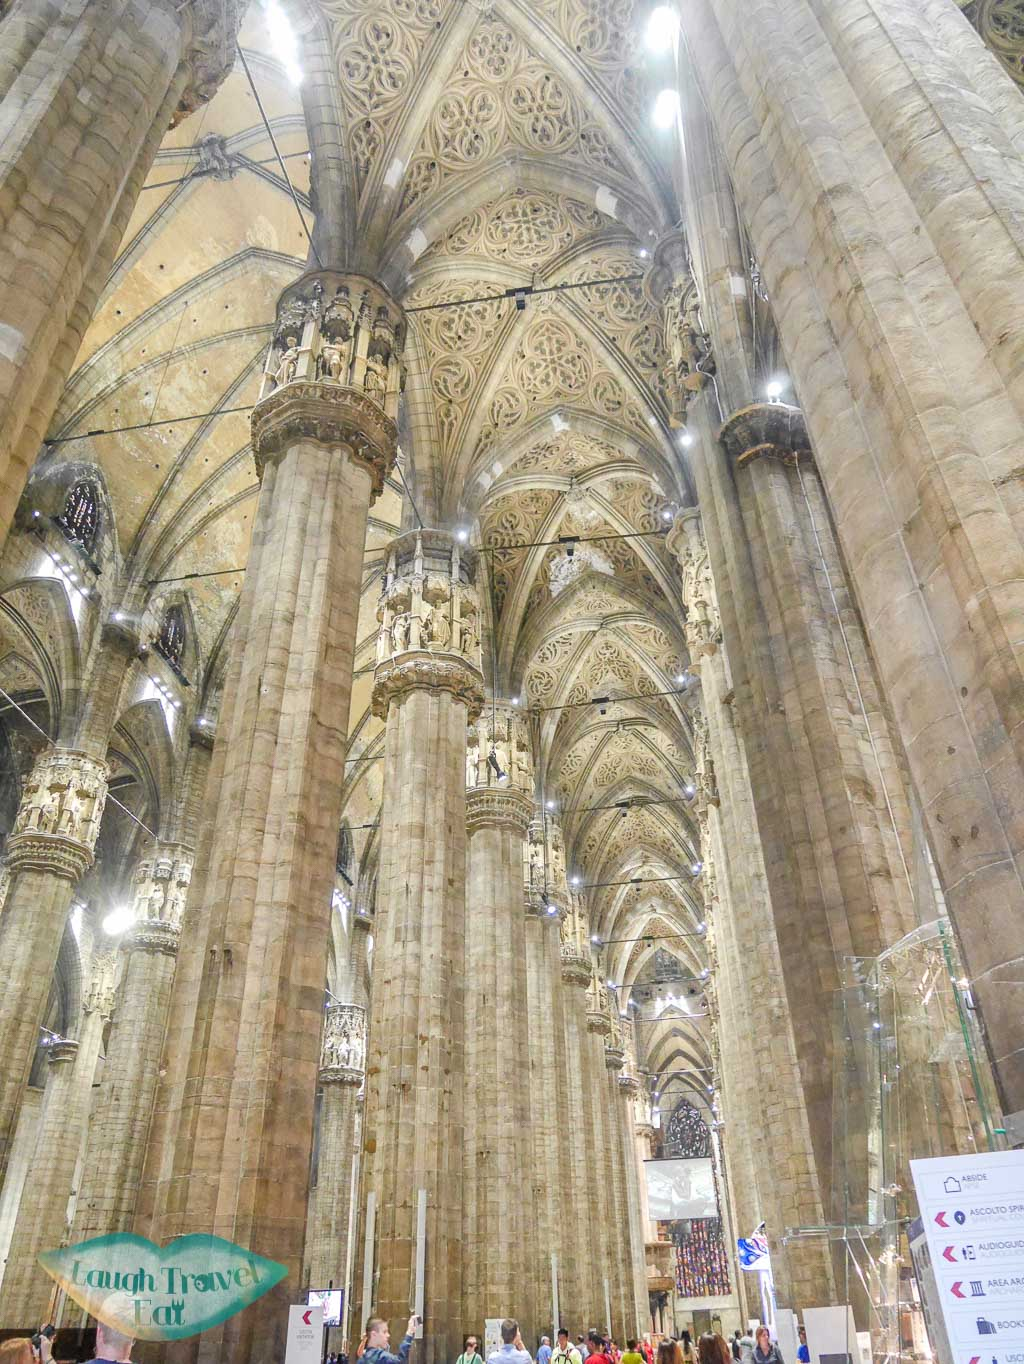 Interior of Duomo, Duomo di Milano, Milan, Italy - Laugh Travel Eat